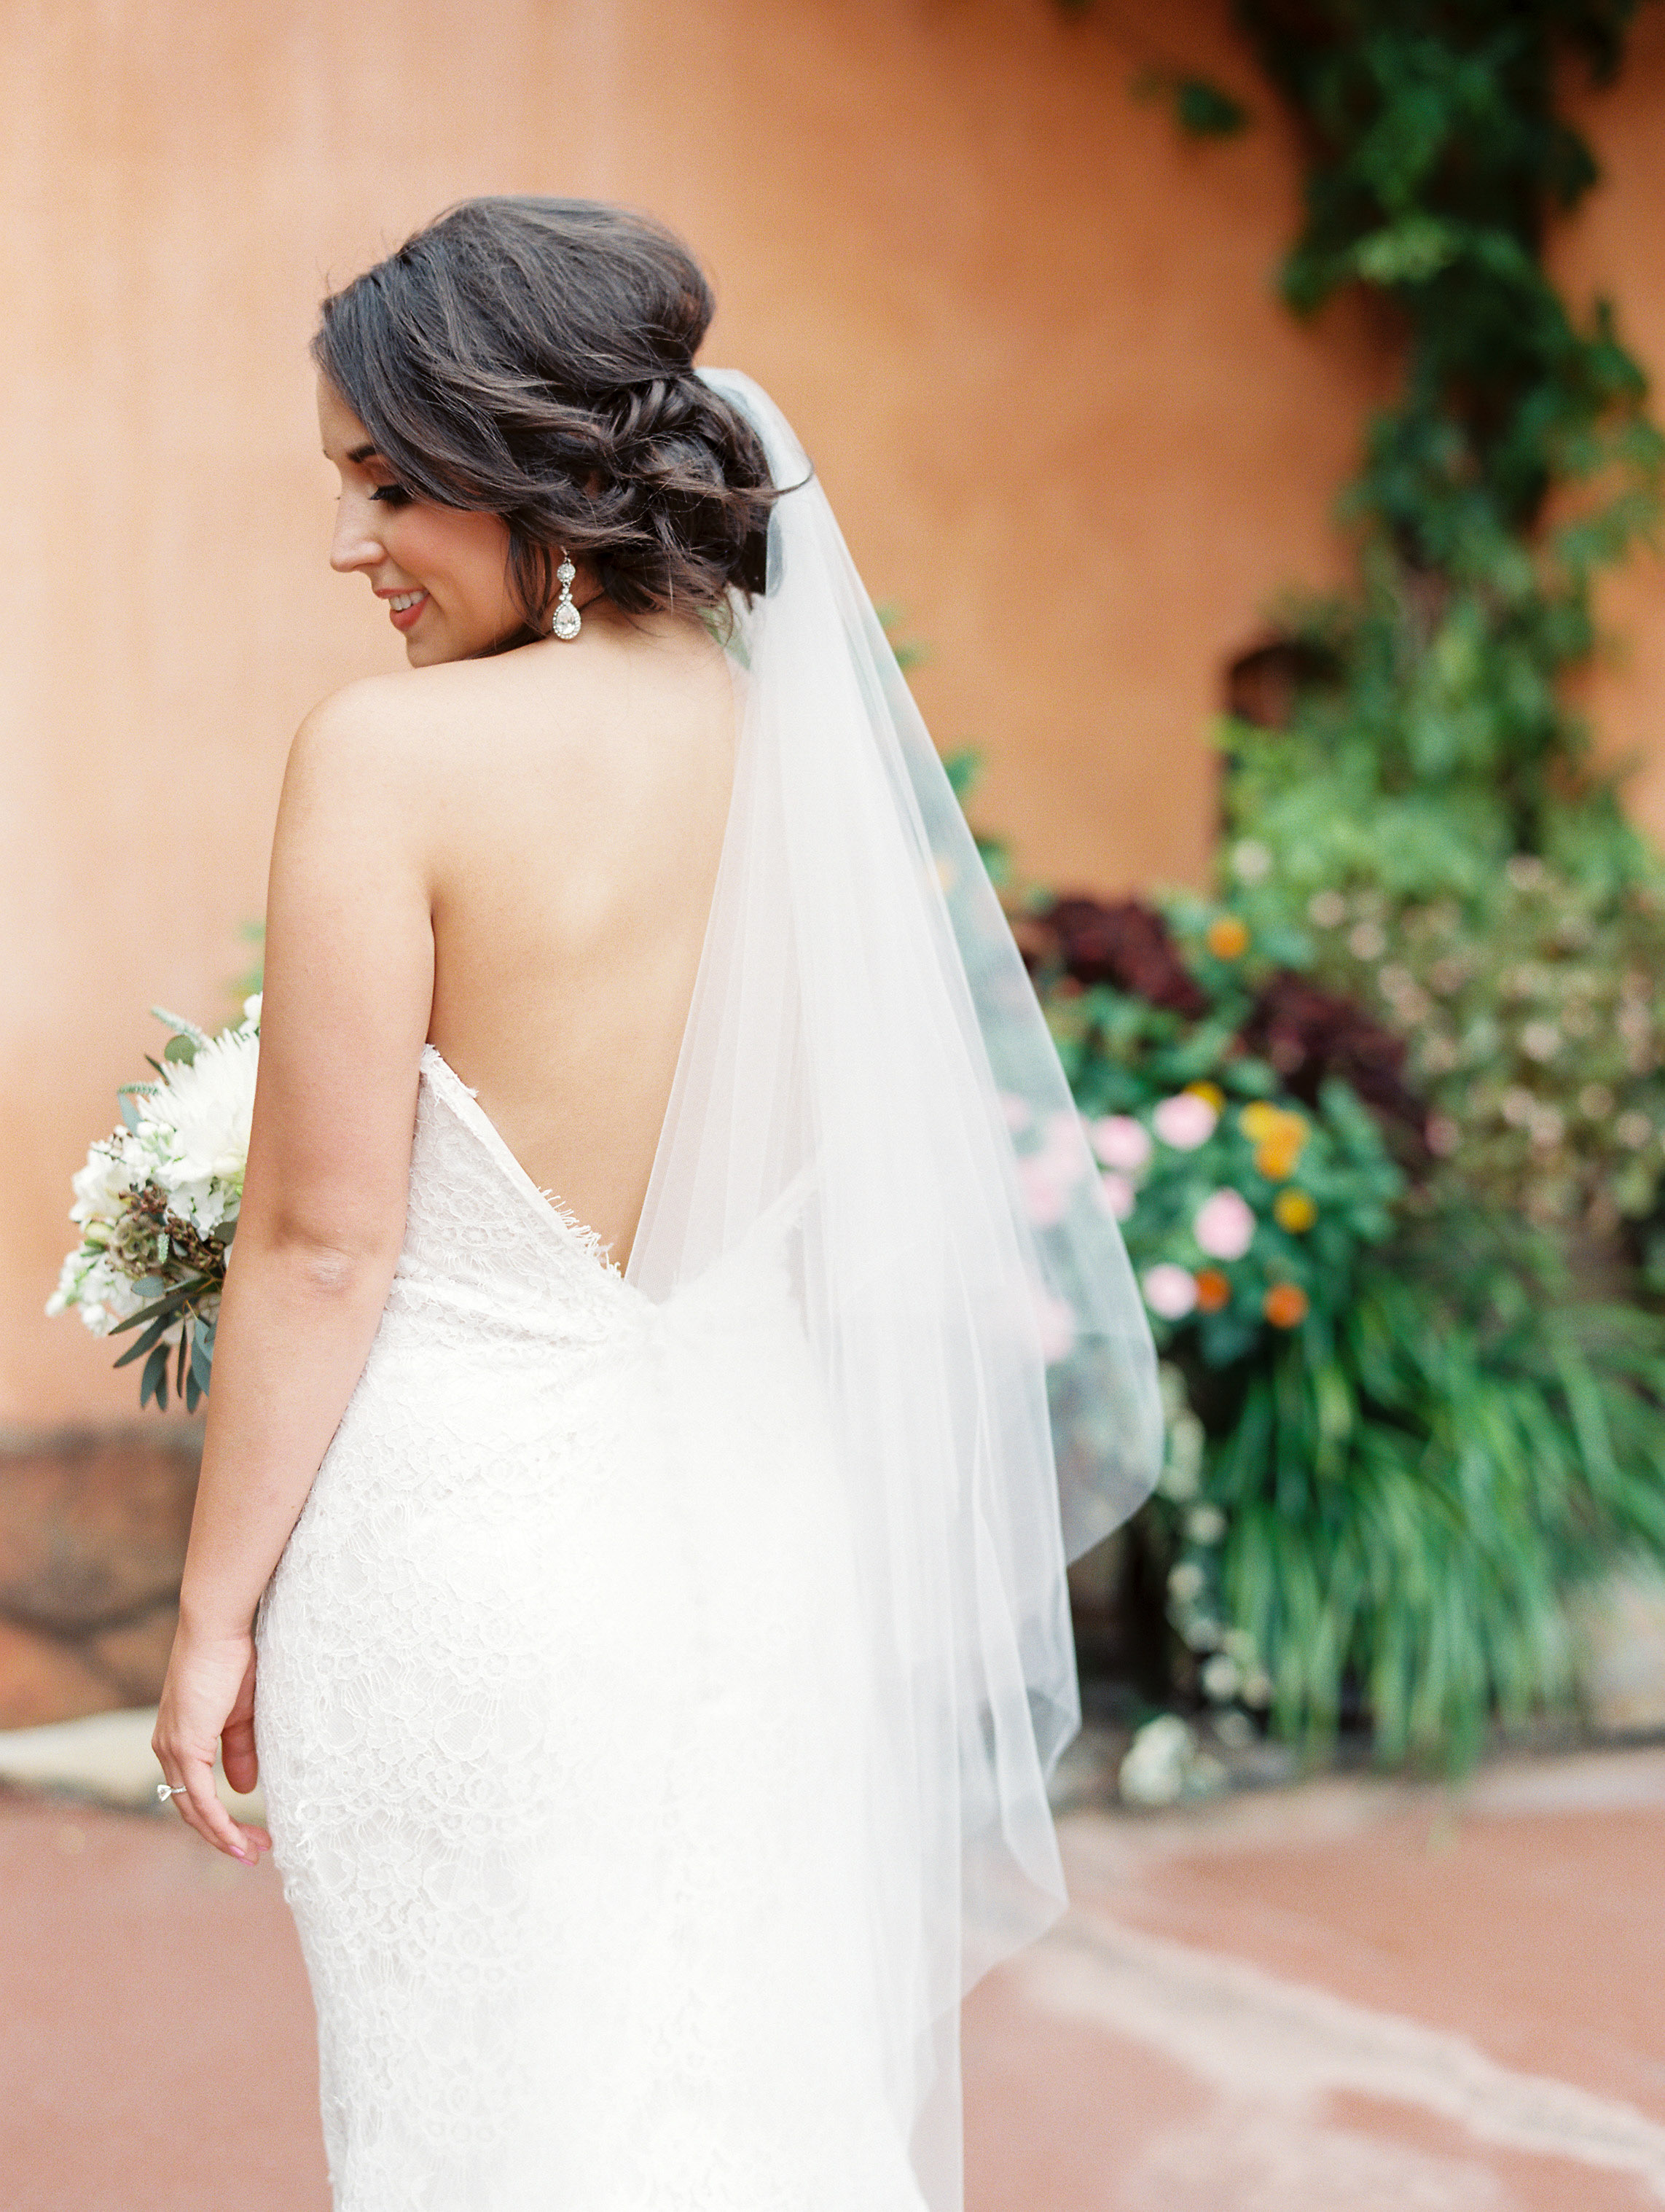 Dana Fernandez Photography Agave Road Agave Estates Houston Texas Wedding Photographer Destination Southwest Film-30.jpg